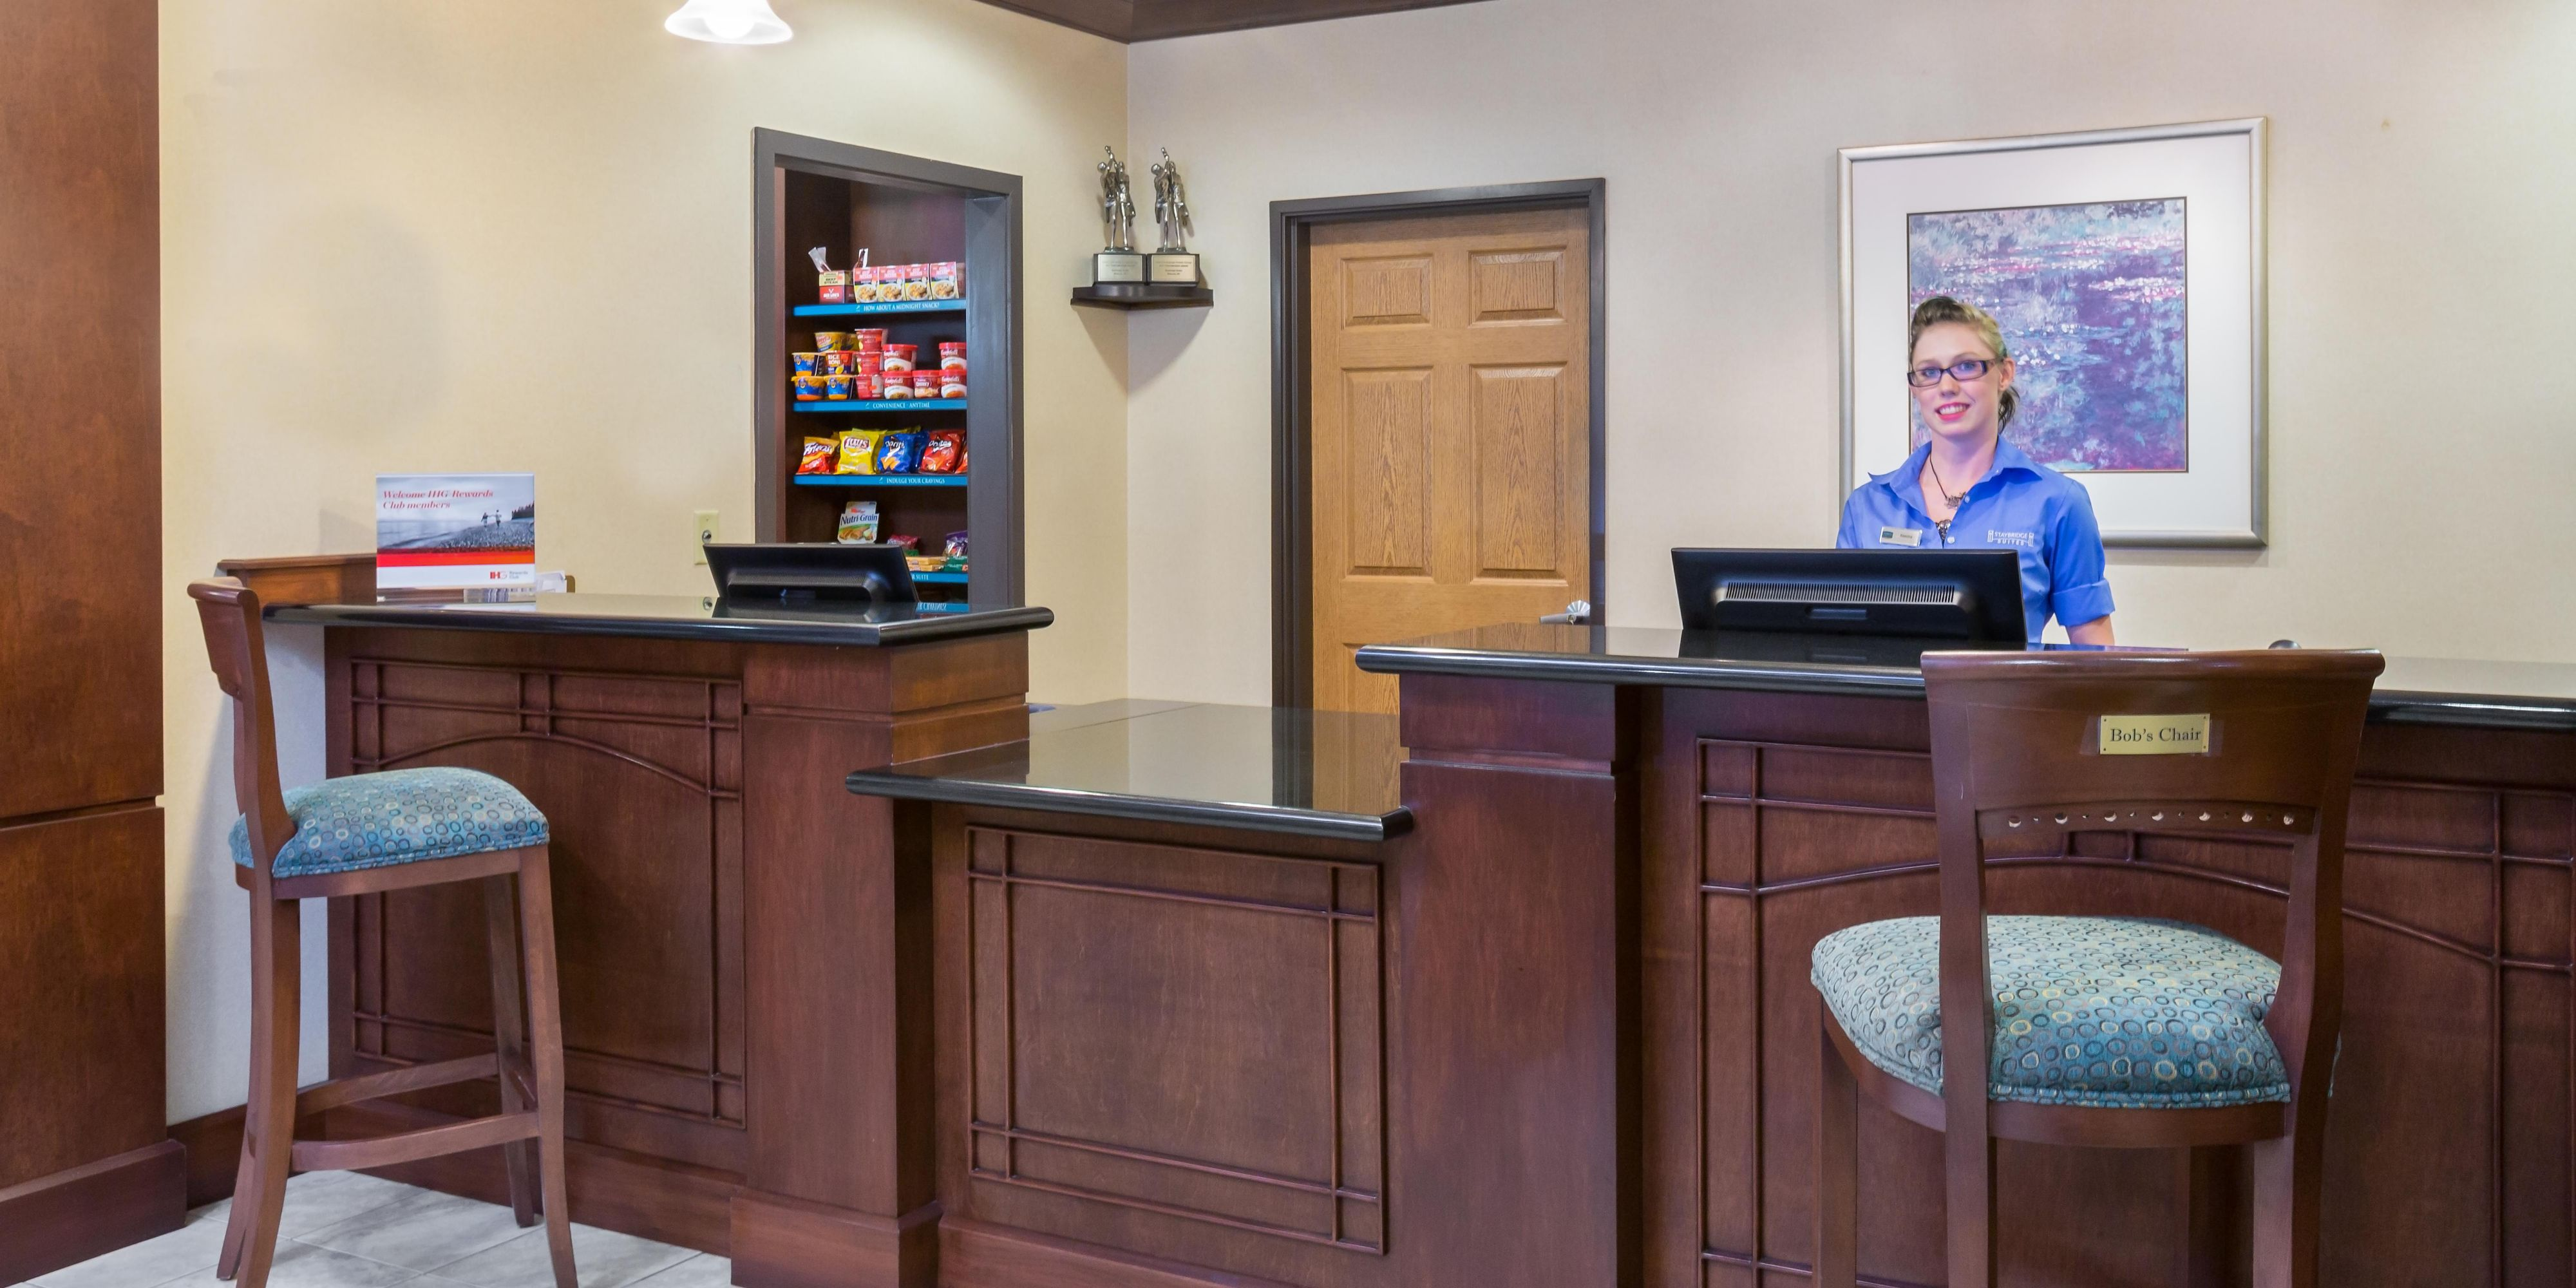 Best Inviting Entrance To Staybridge Suites Missoula With Furniture Stores  Missoula